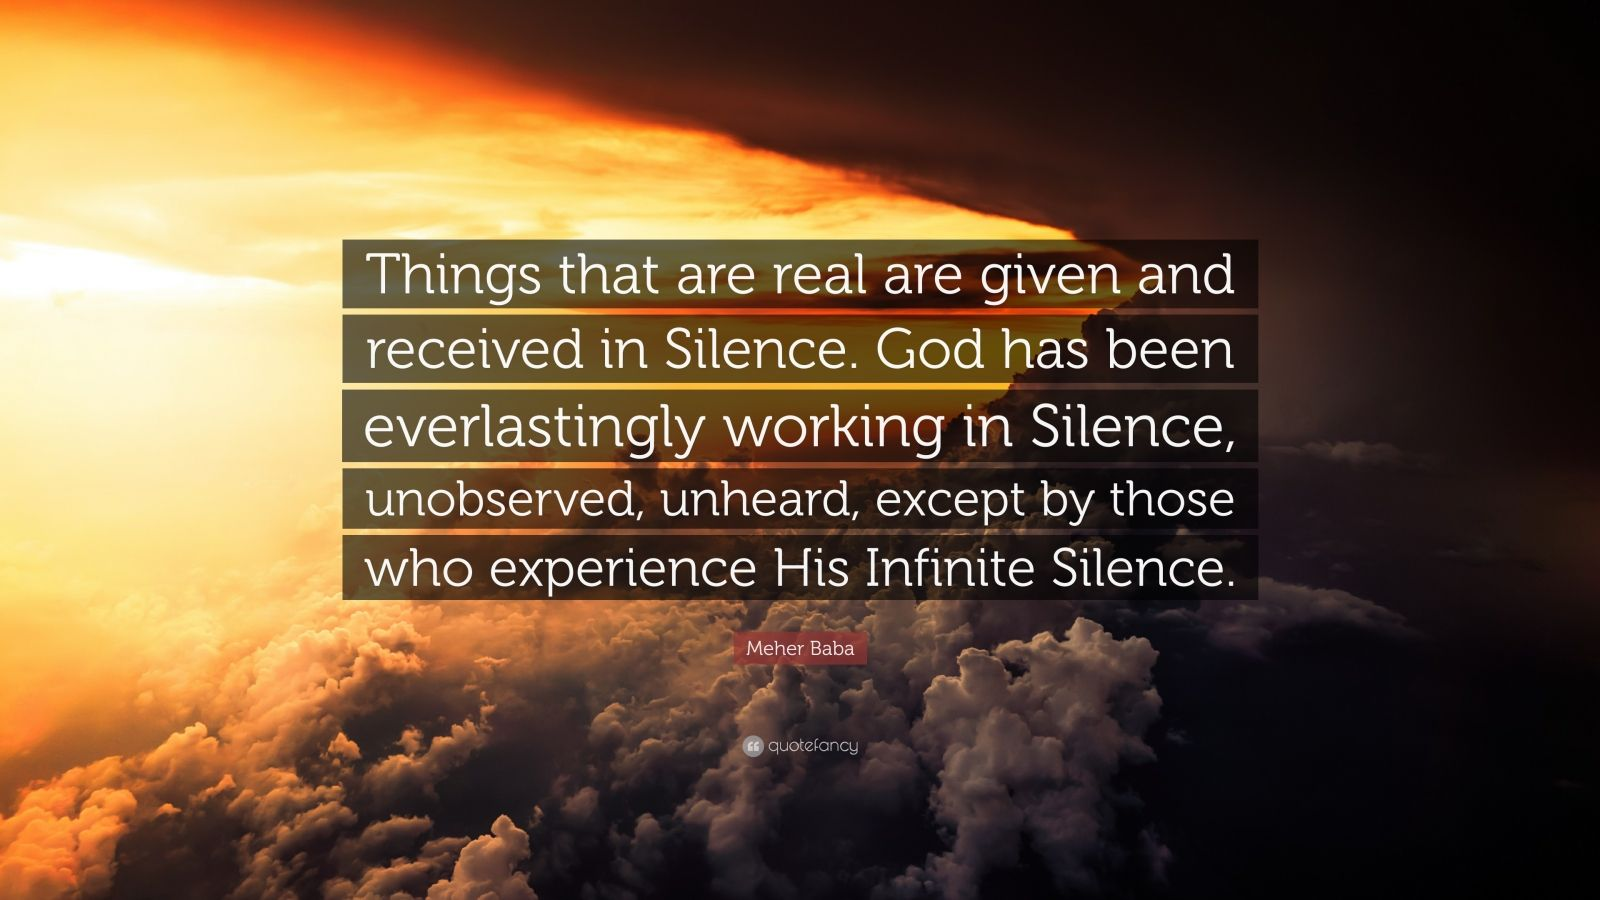 "Meher Baba Quote: ""Things that are real are given and received in Silence. God has been everlastingly working in Silence, unobserved, unheard, except by those who experience His Infinite Silence."""